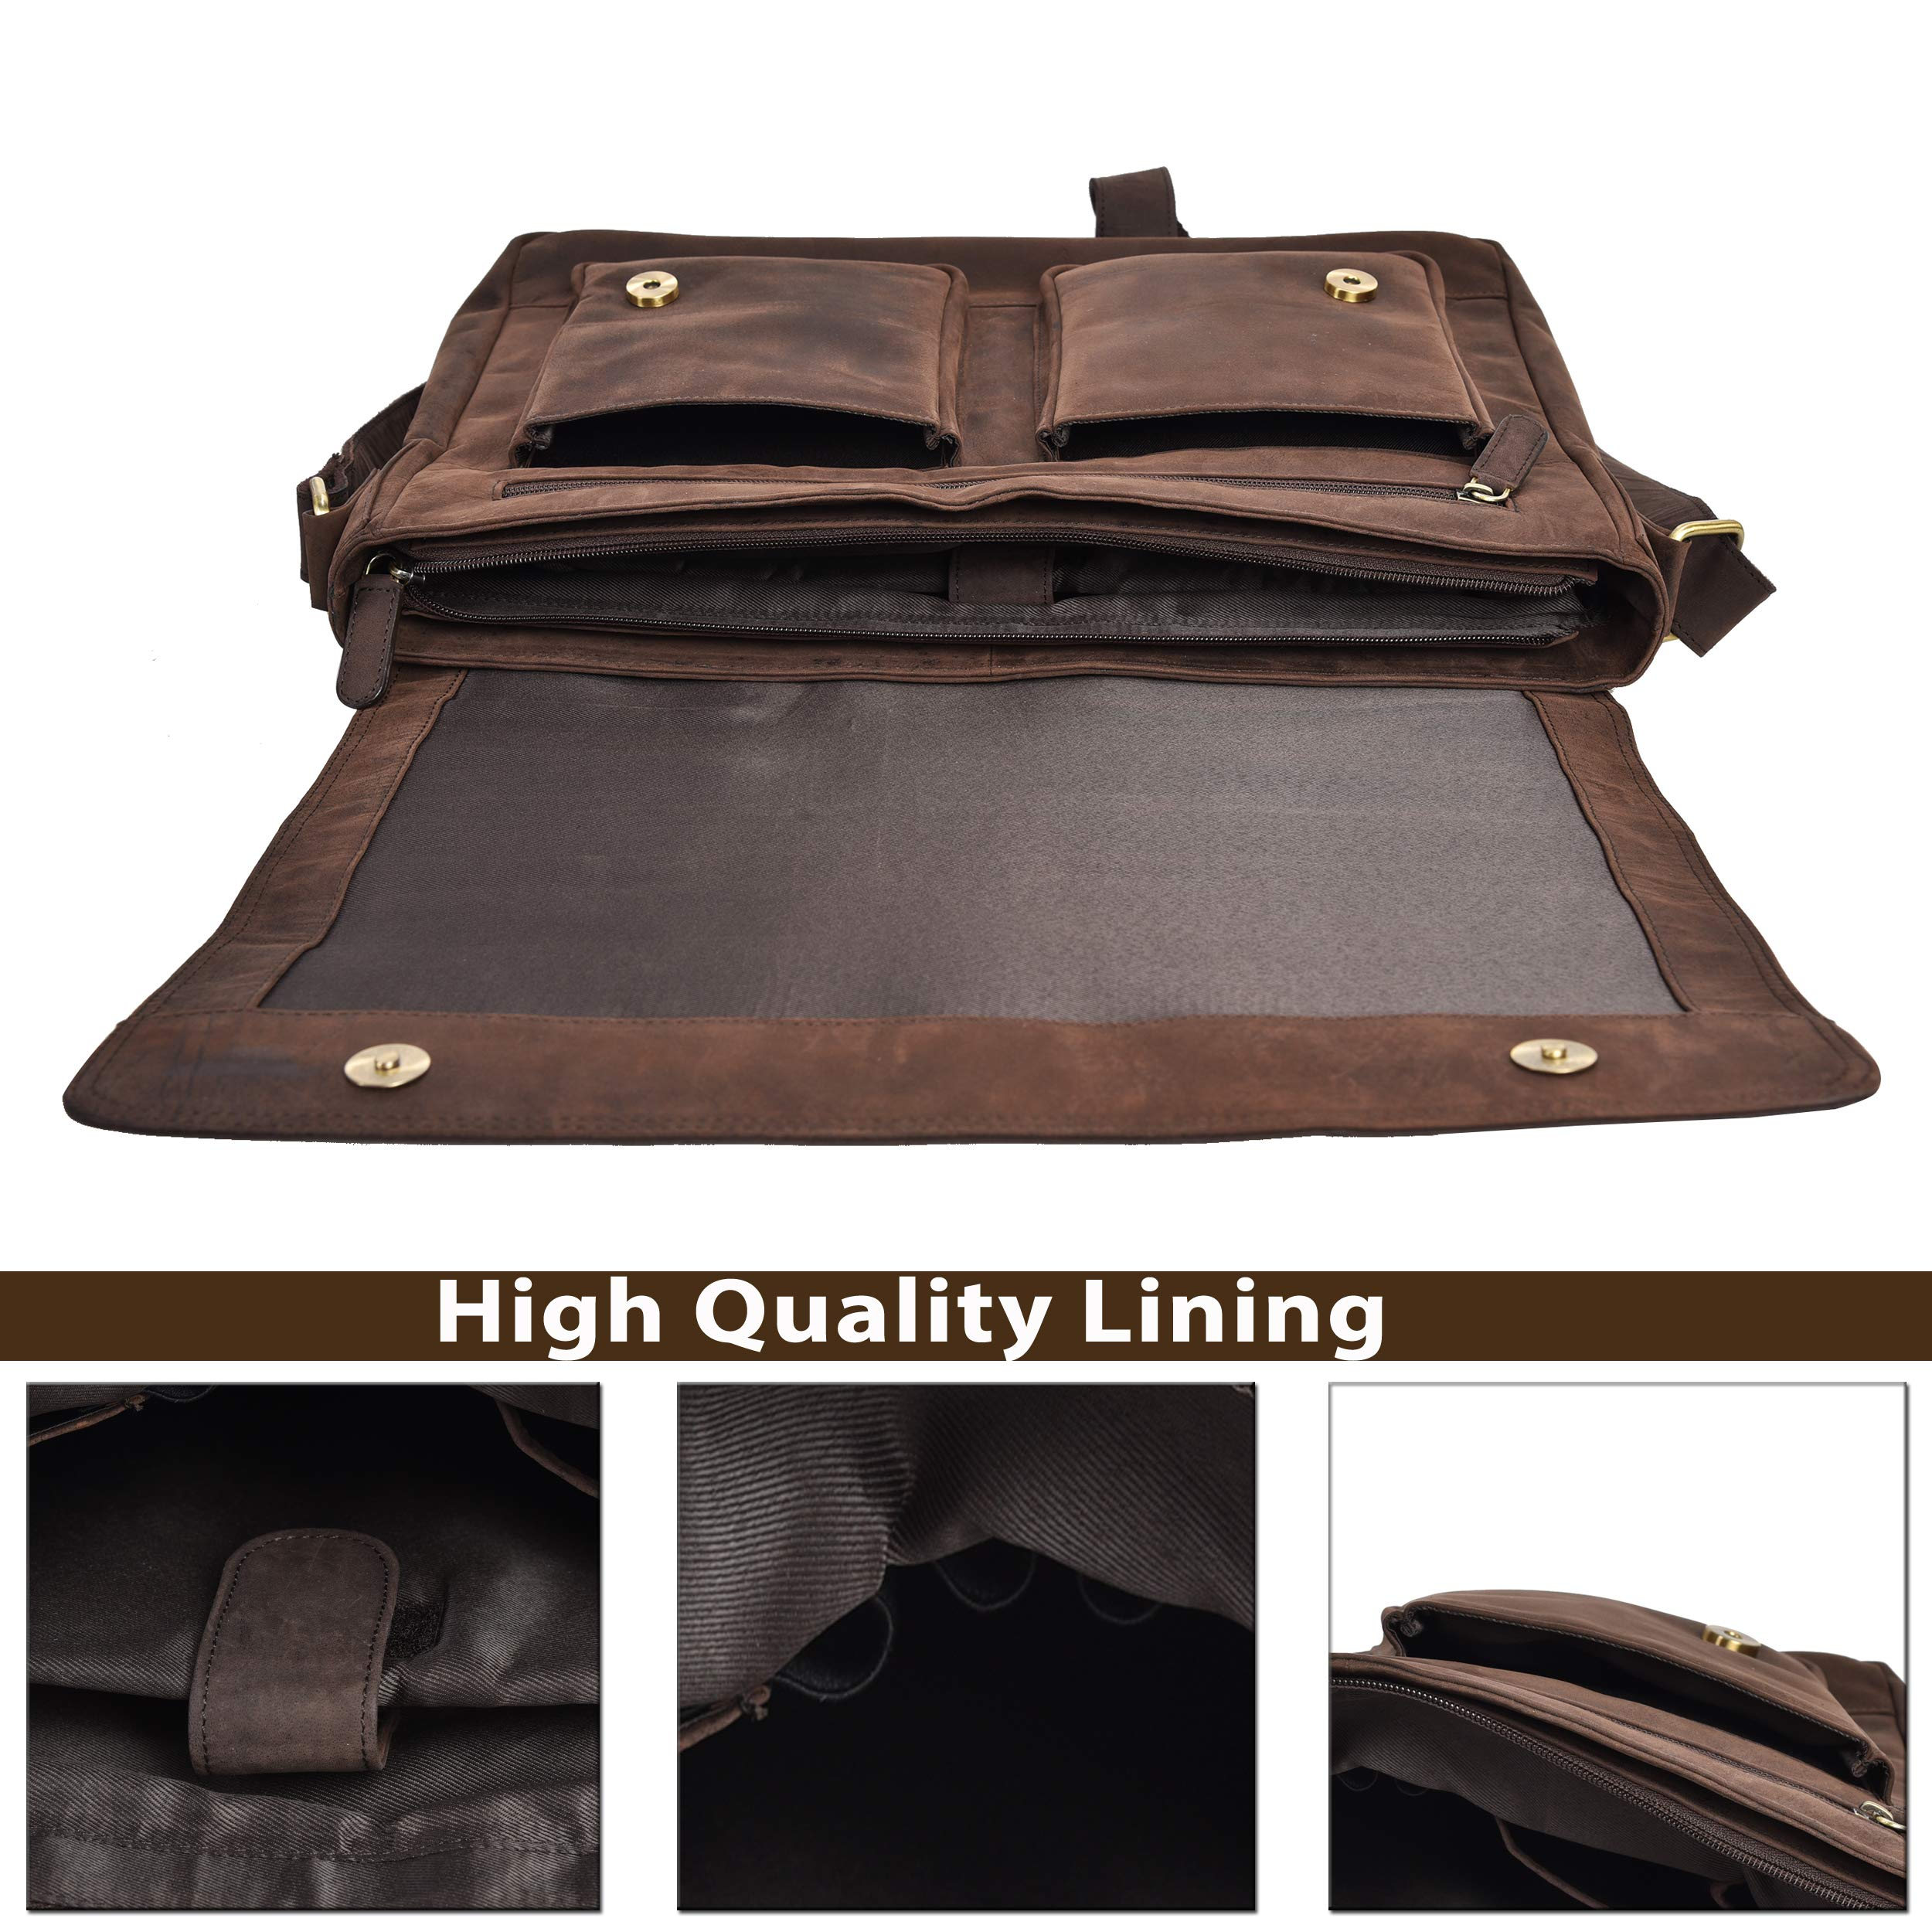 Leather Messenger Bag for Men & Women 14inch laptop Bag for Travel College Work - Handmade by LEVOGUE (Brown Oily Hunter) by LEVOGUE (Image #6)